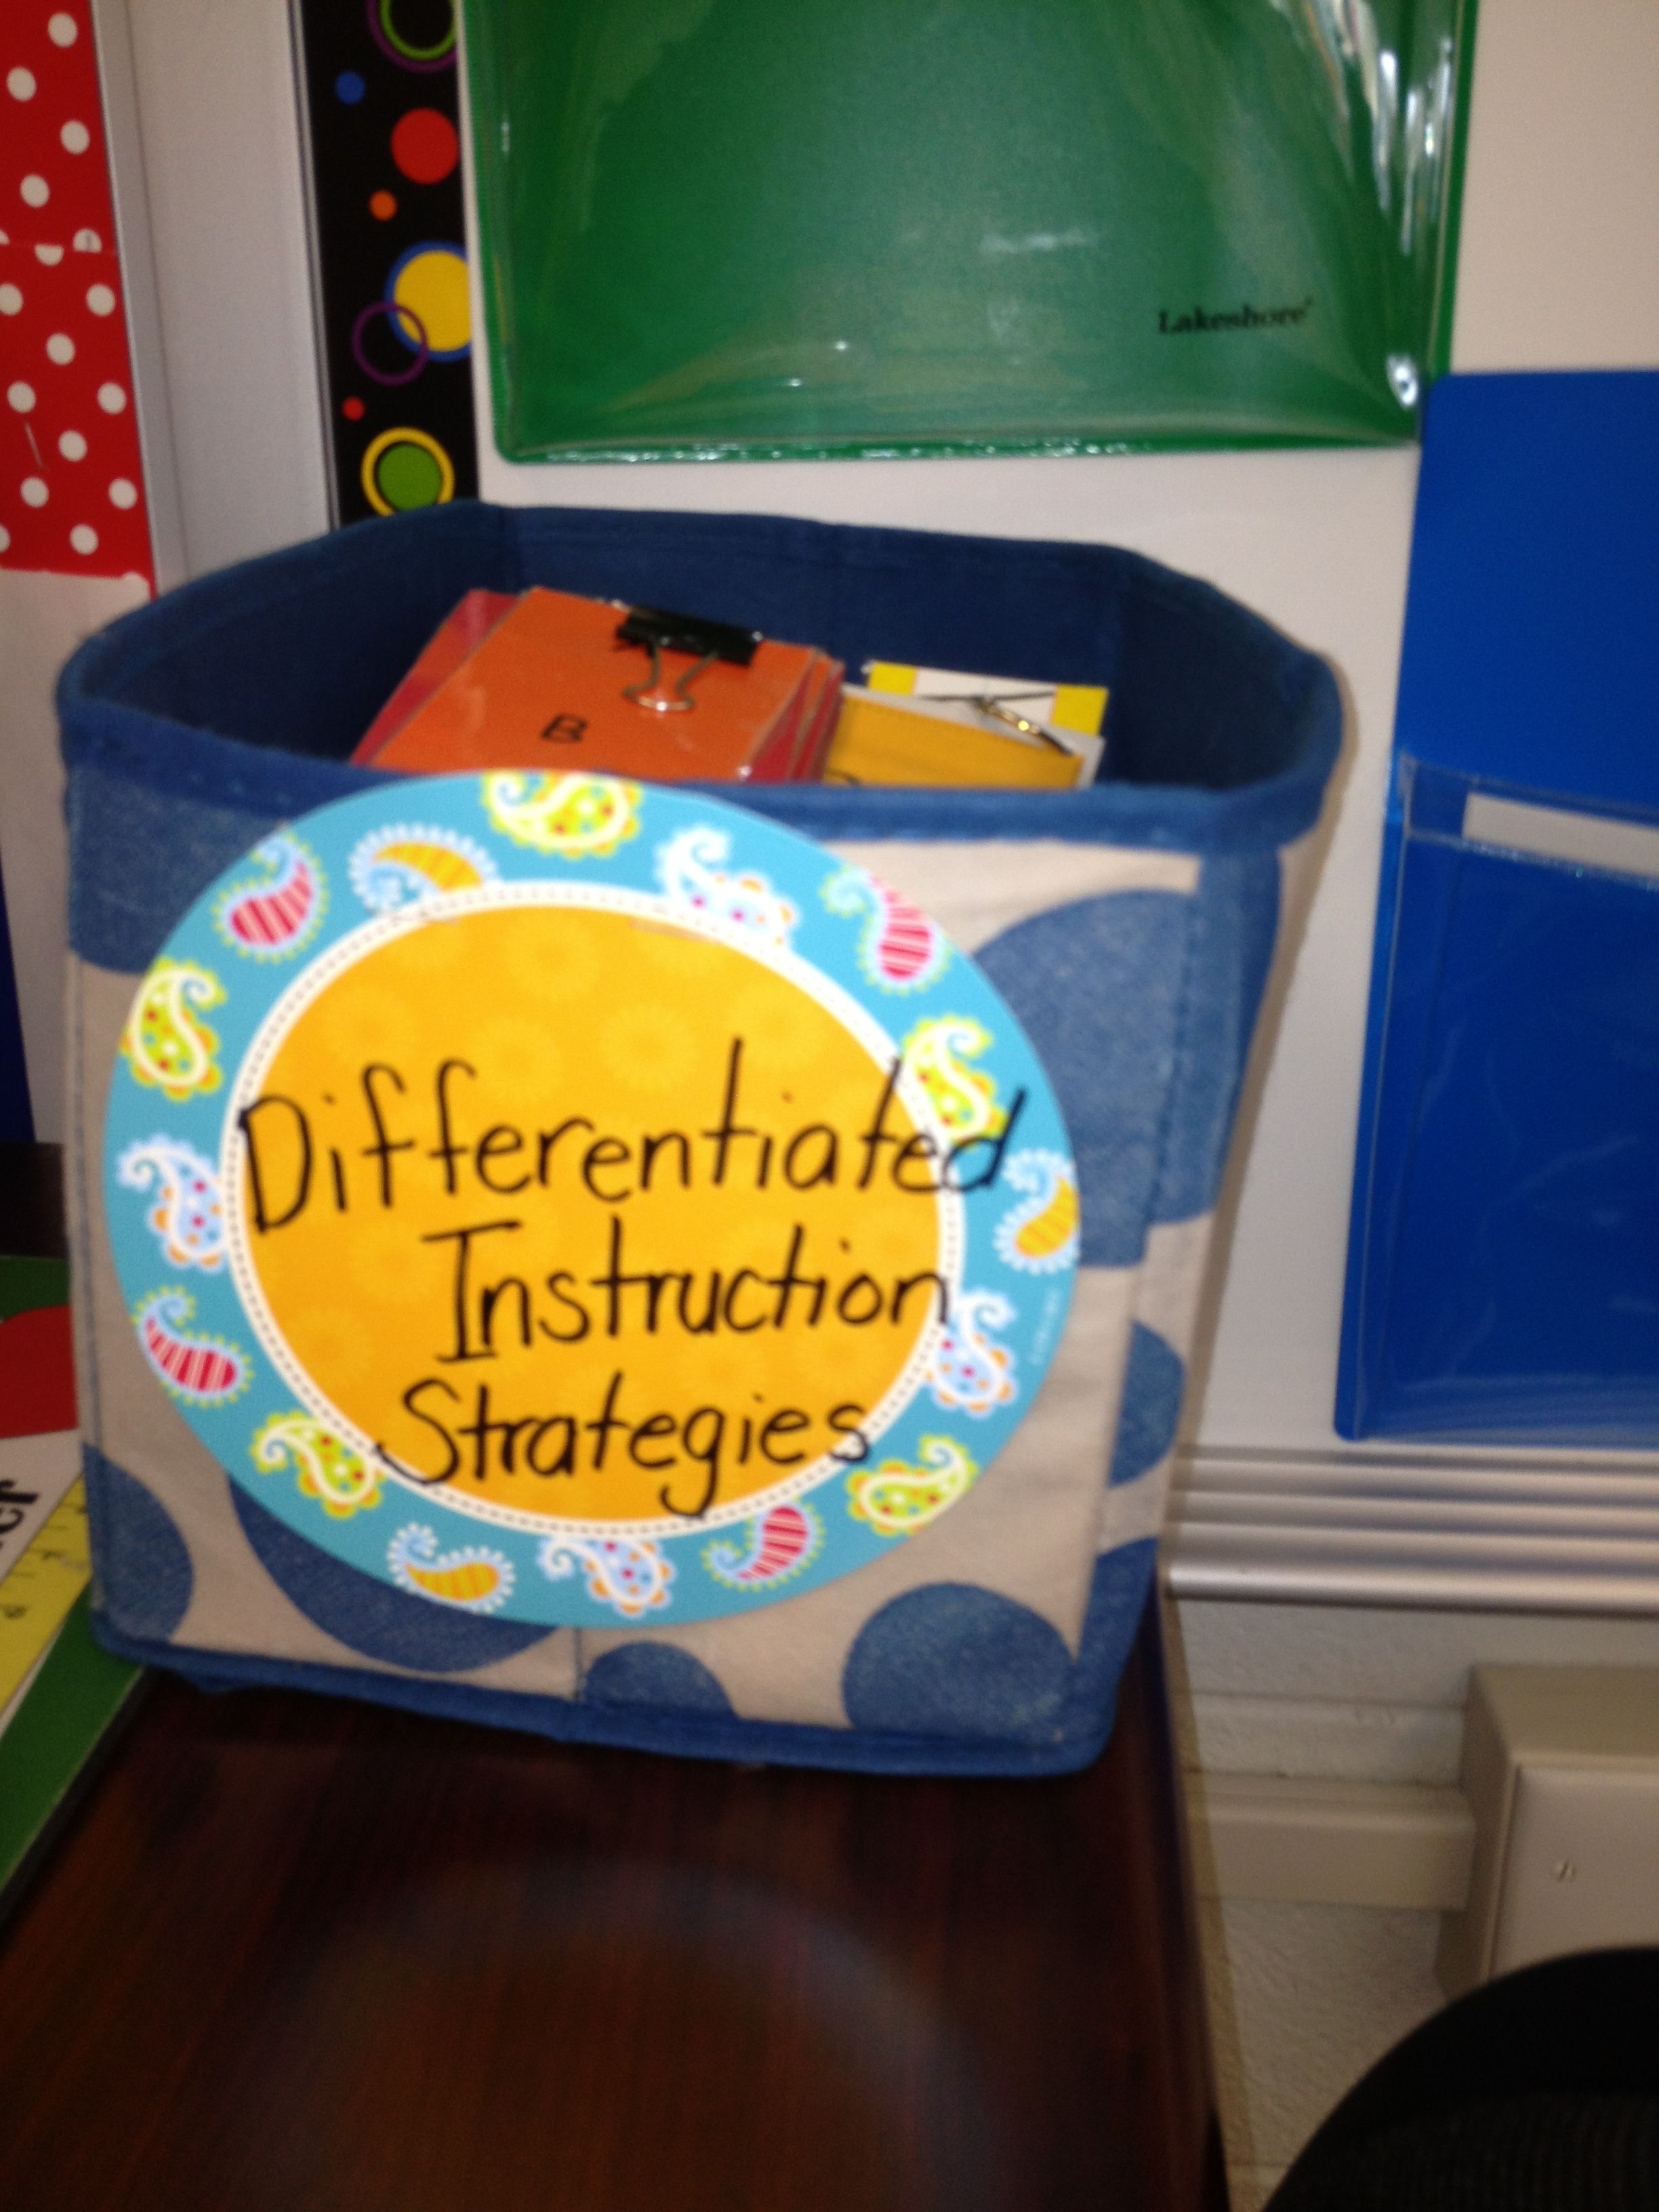 Differentiated Instruction Strategies Bin Includes Flip Cards